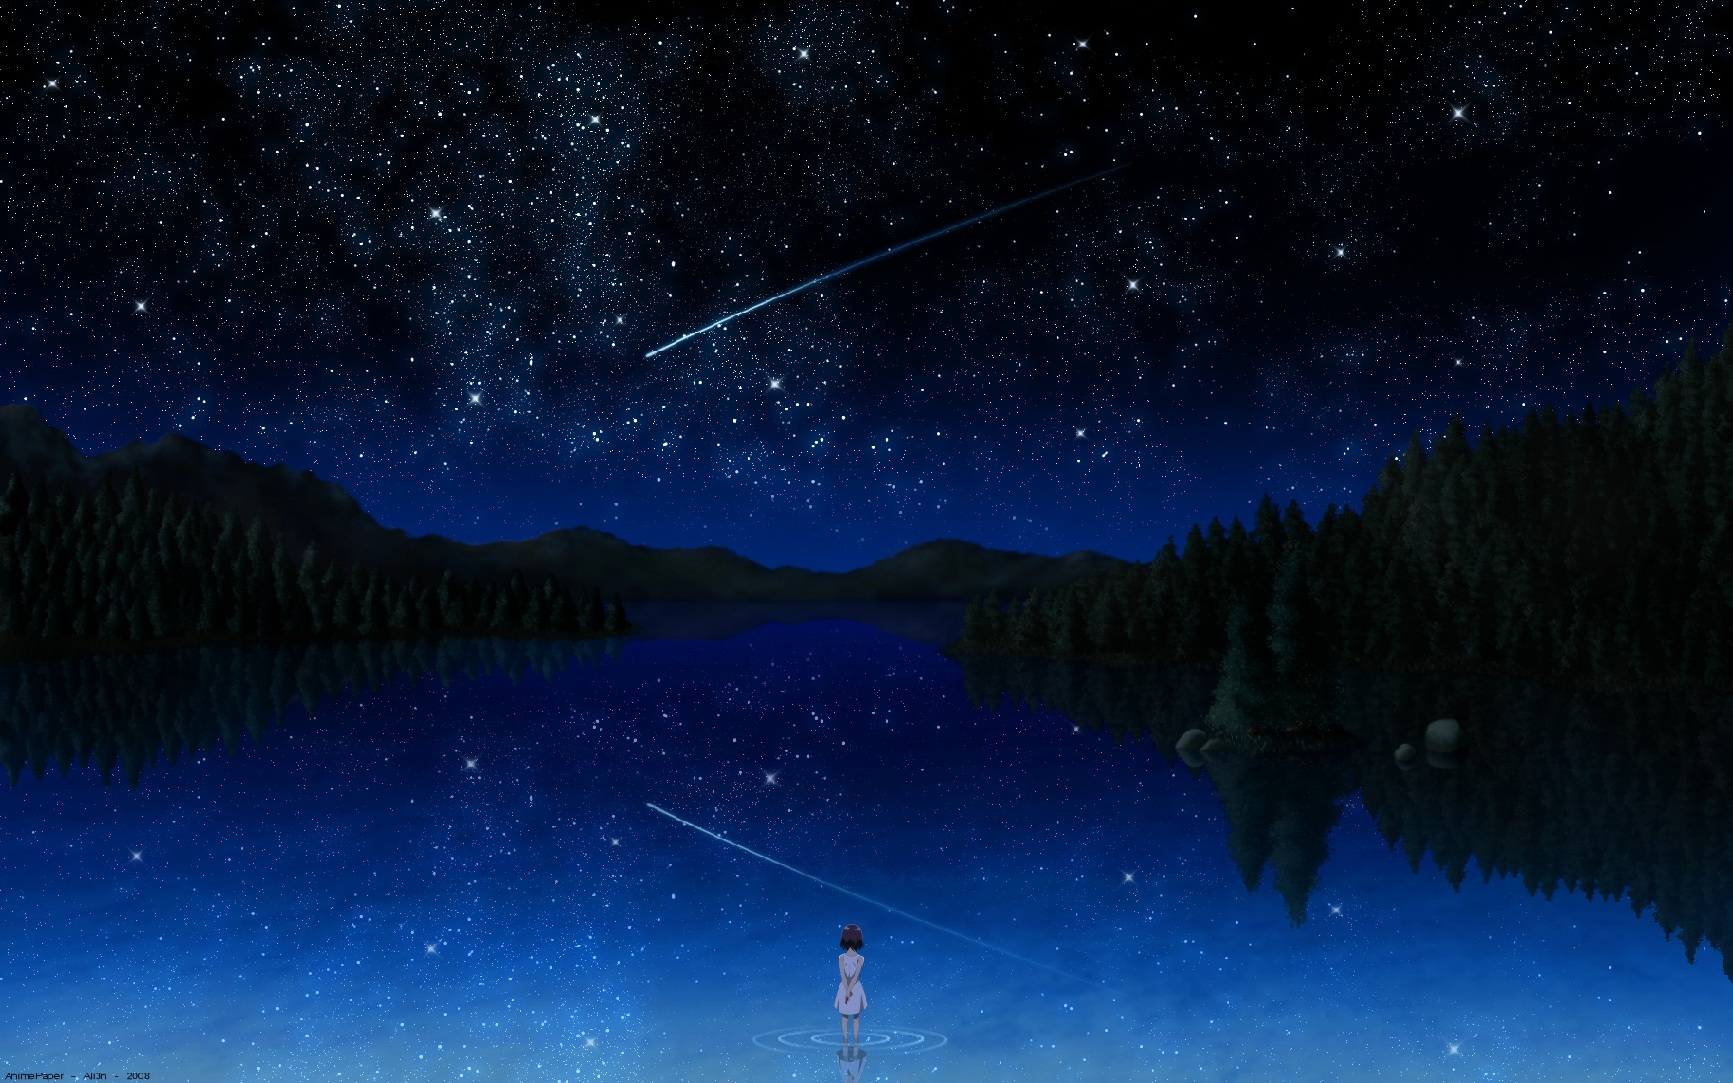 anime-water-nature-anime-girls-shooting-stars.jpg